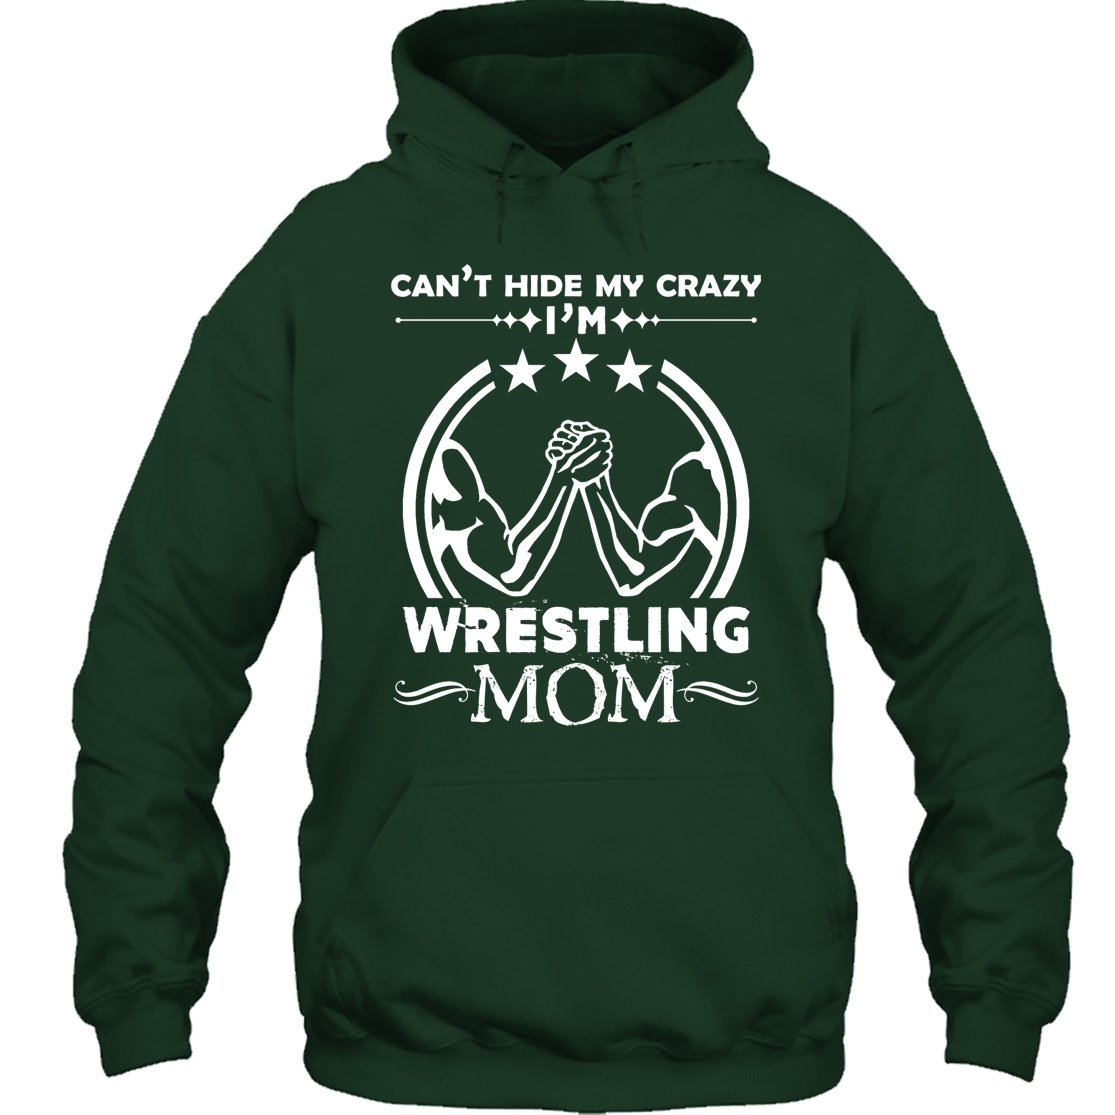 Wrestling Cool T-Shirt - Wrestling Mom Tee Shirt Gift For Friends Hoodie (S,Forest) by Crazy Love Shirts